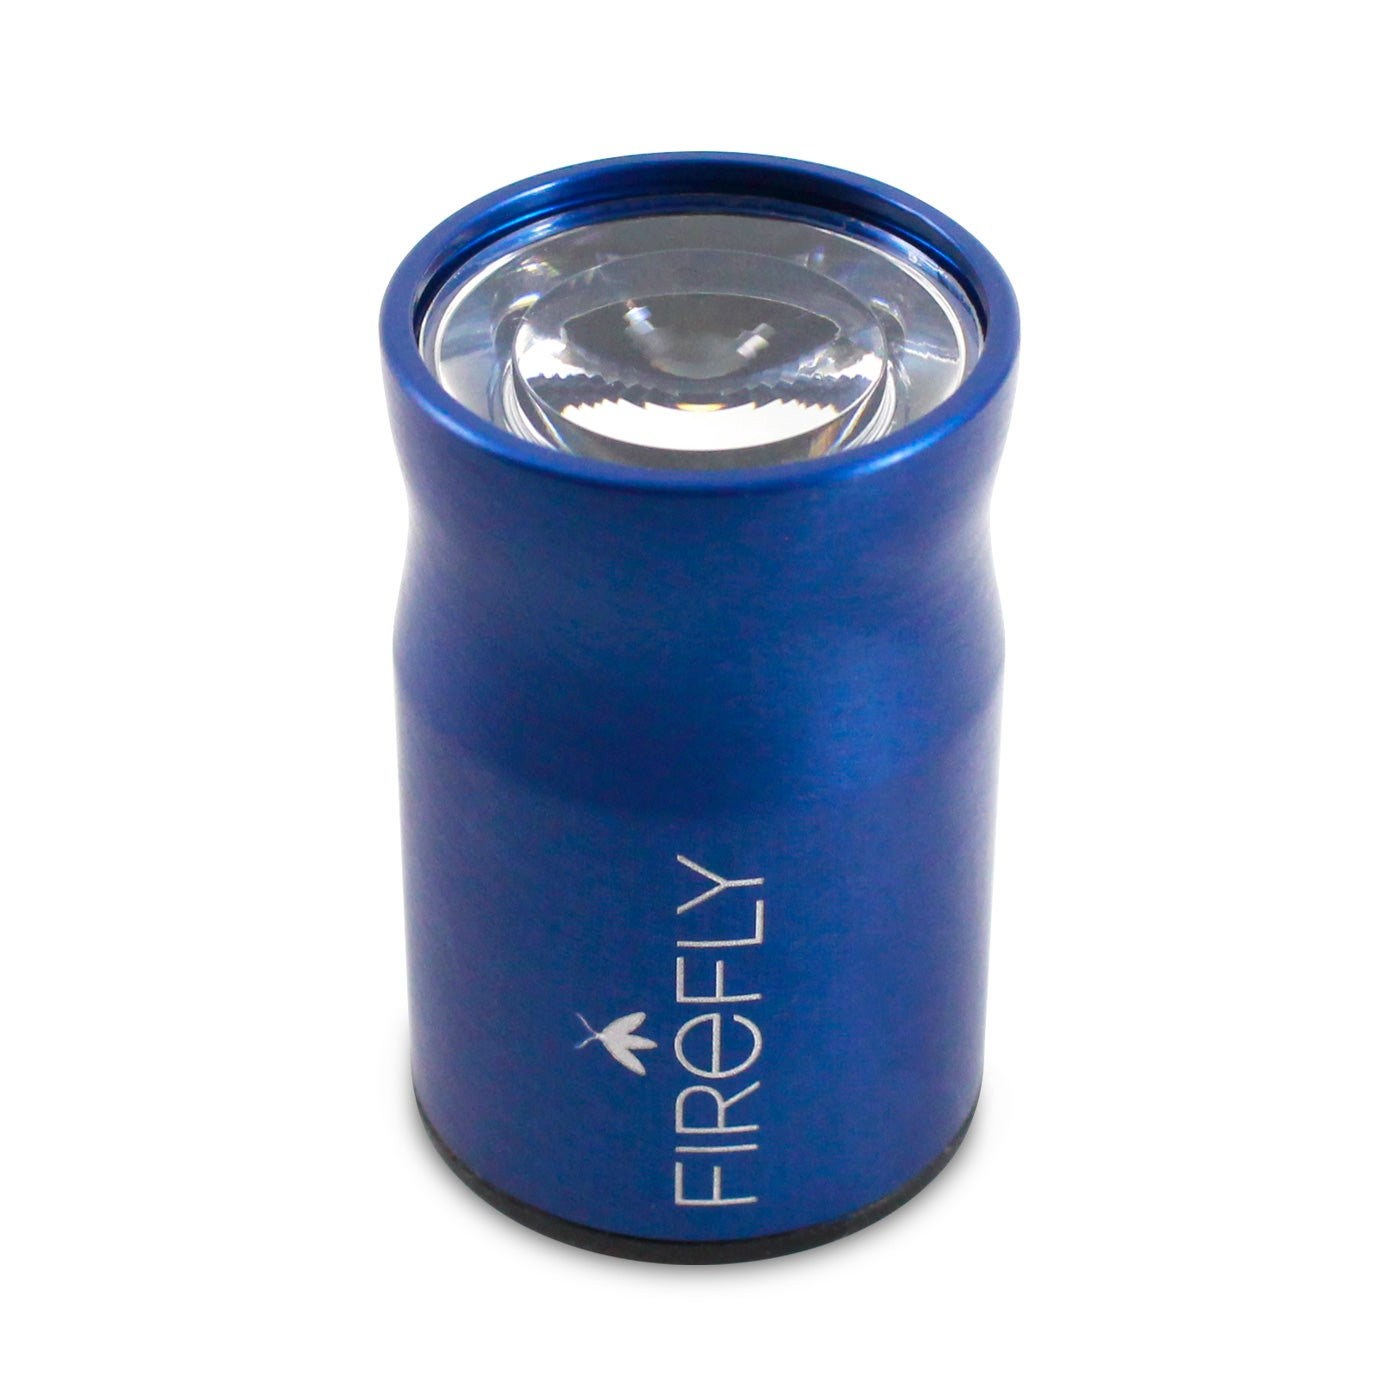 Dental Headlight - Firefly Replacement Barrel Blue